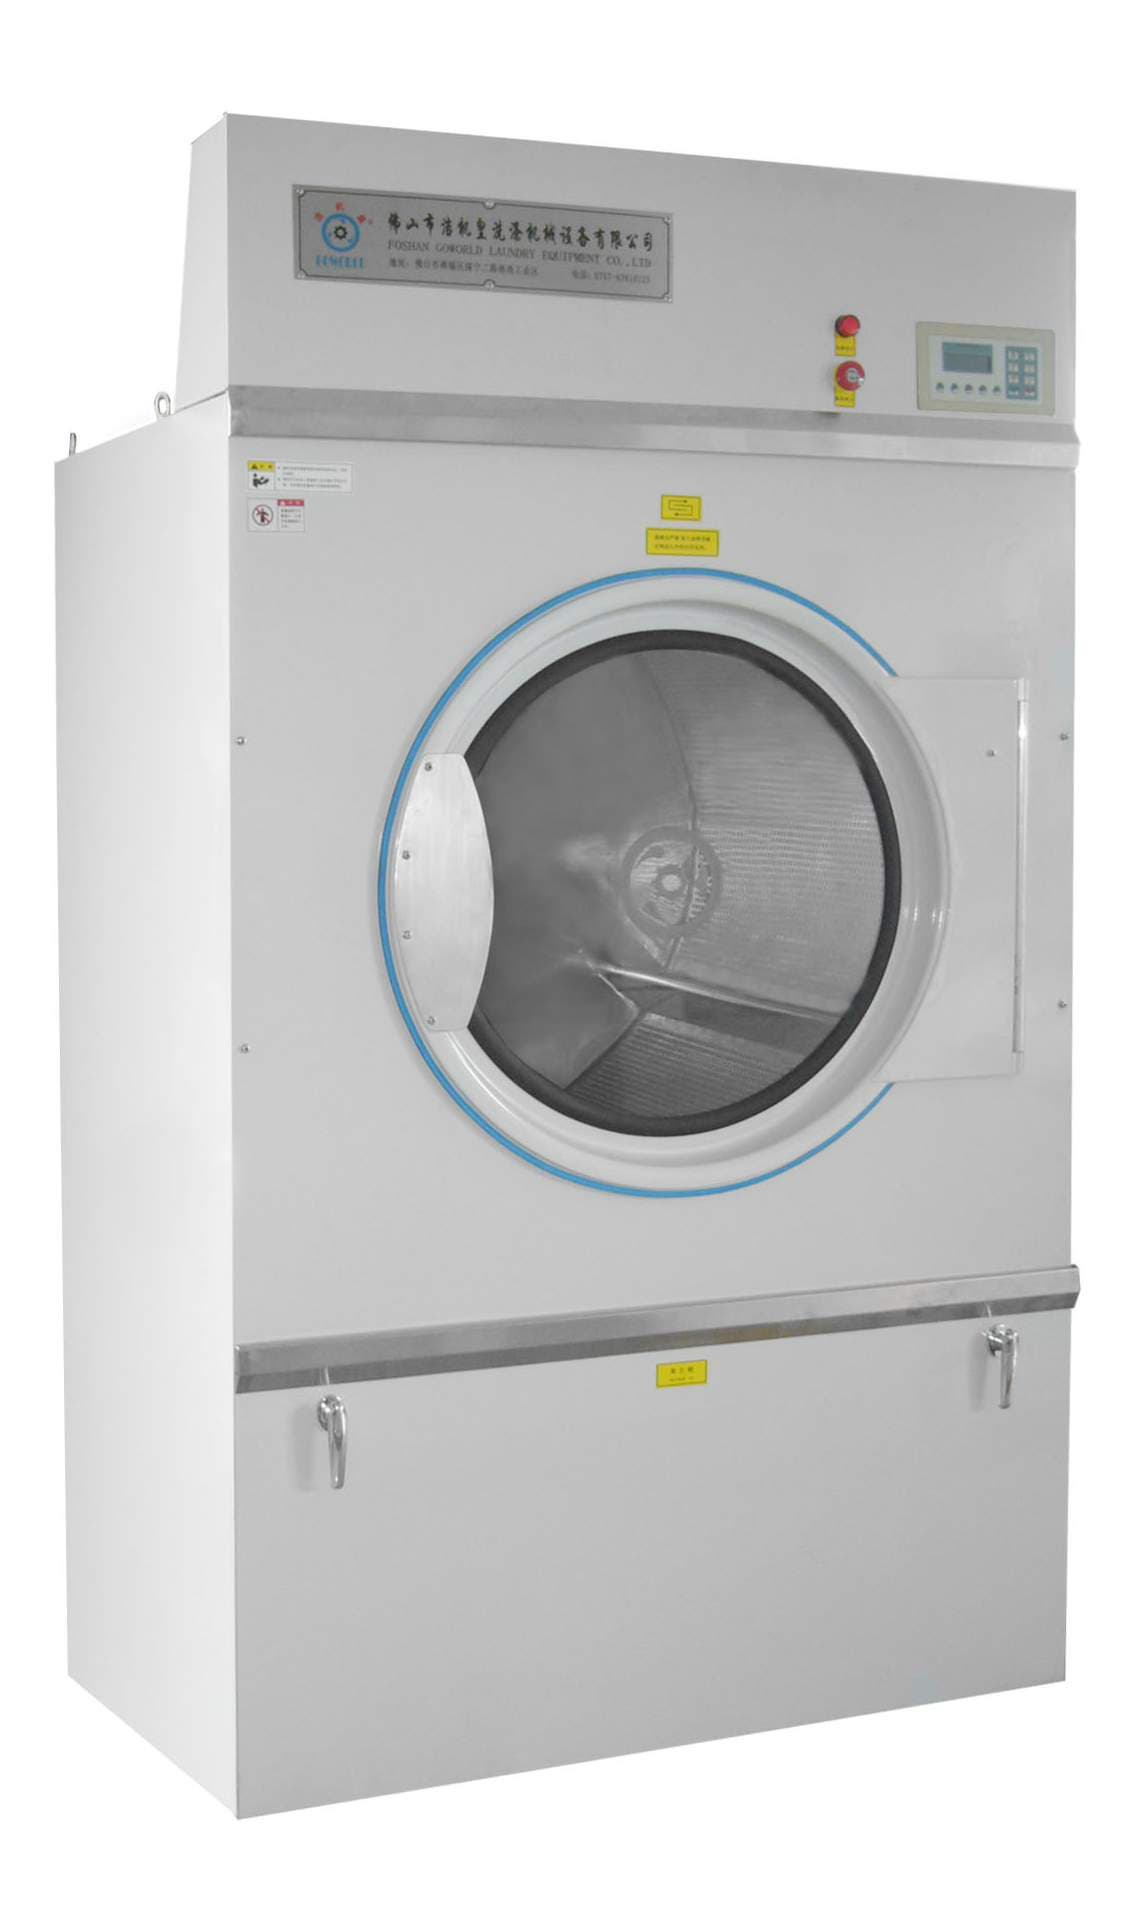 tumble dryer,drying machine,laundry dryer,industrial ...